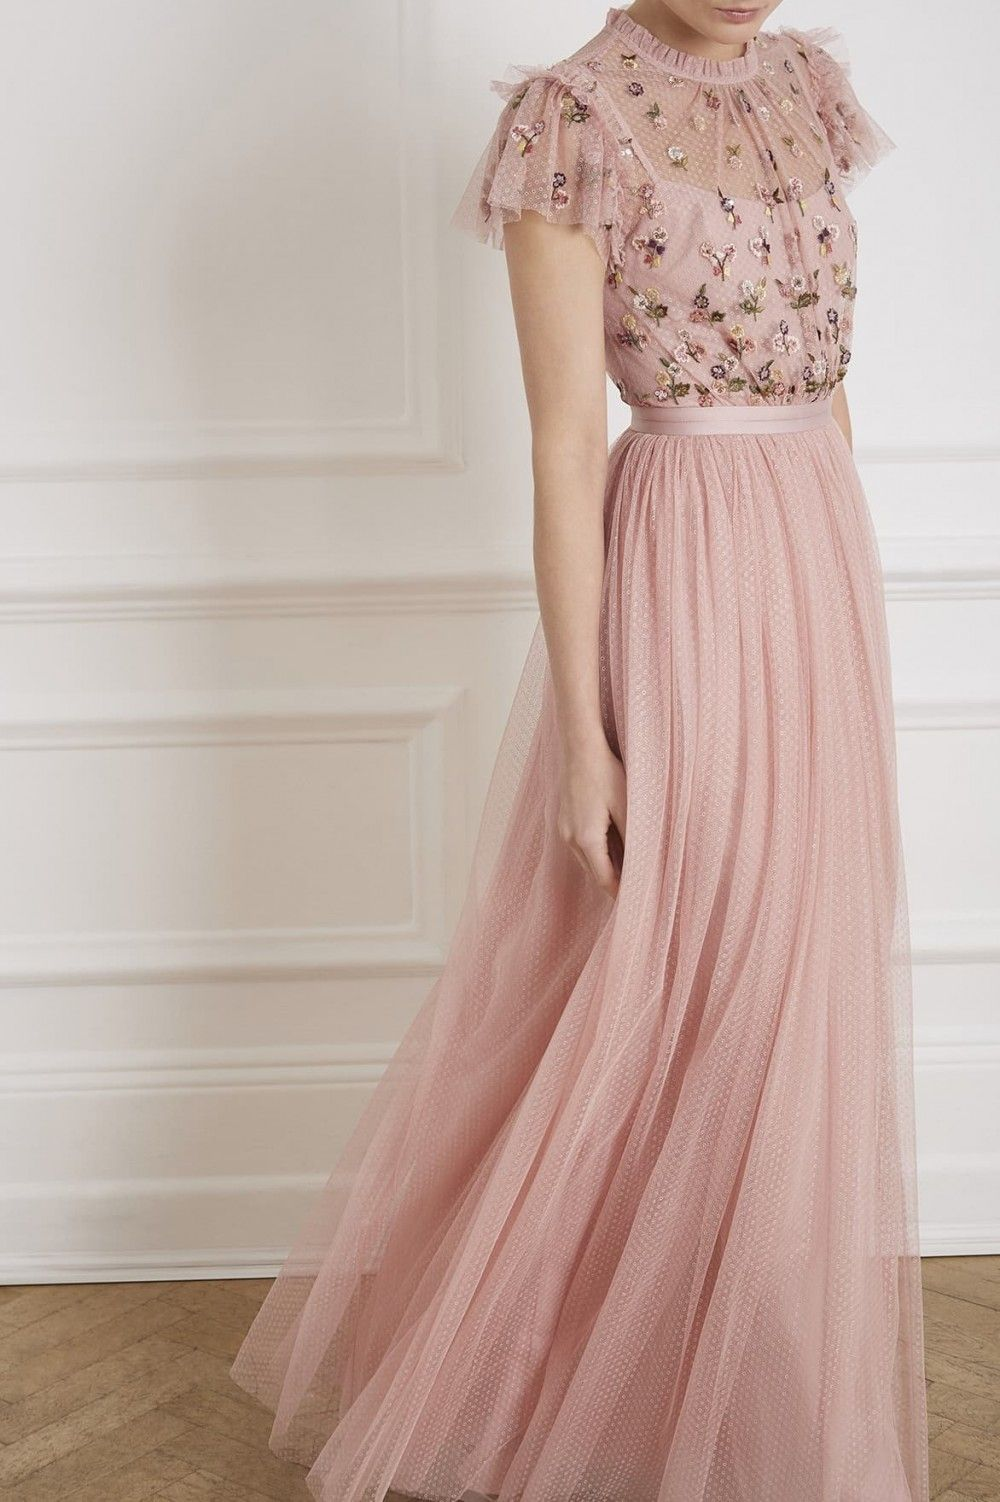 b8e7d480242 Rococo Bodice Gown in Rose Pink from the Needle & Thread PS19 ...